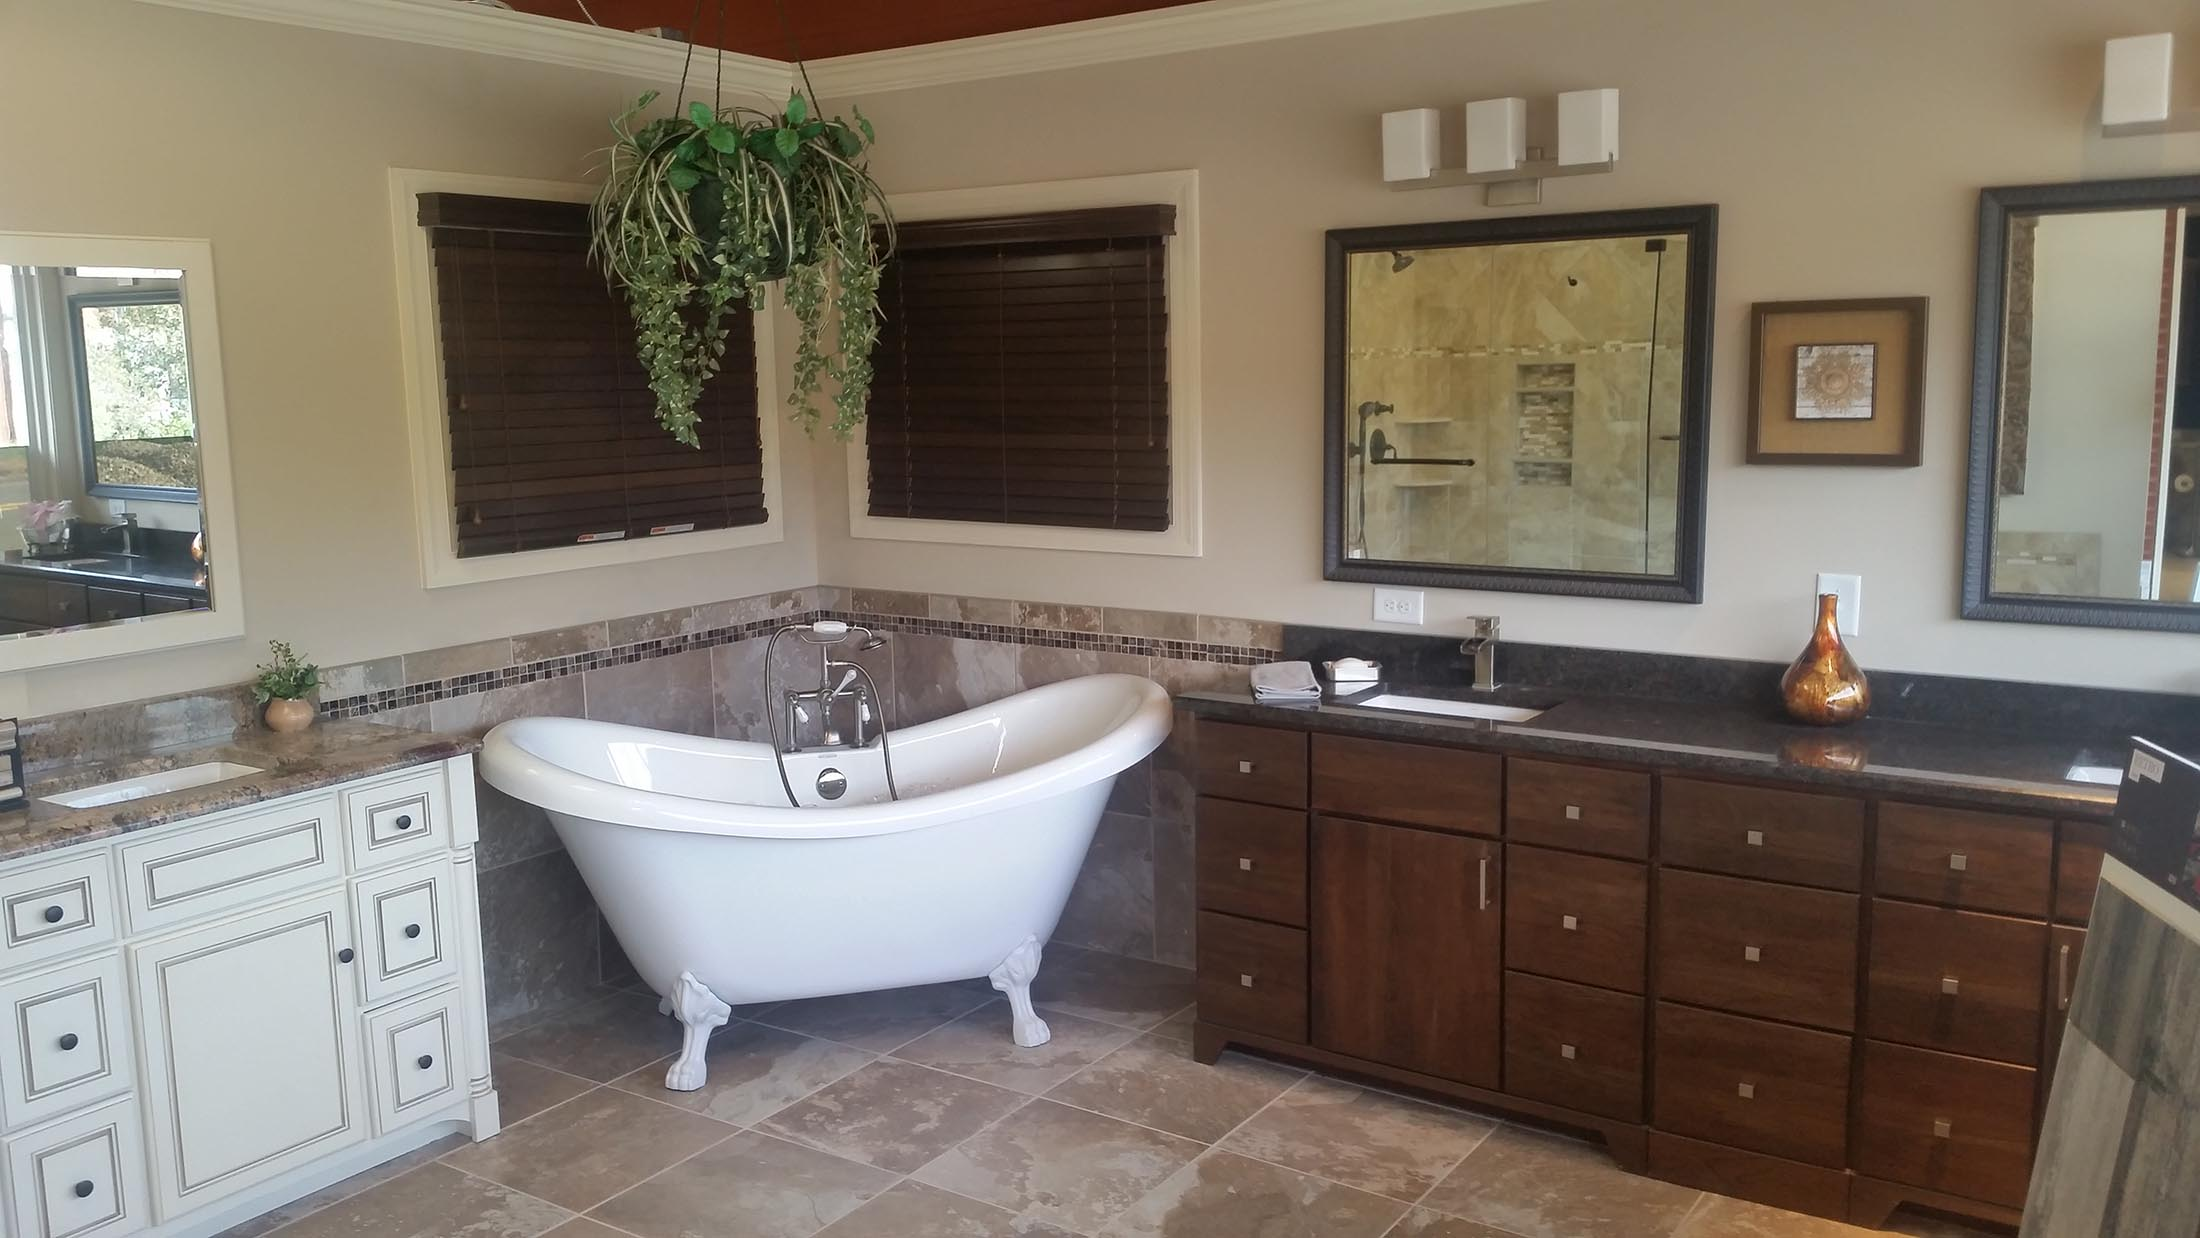 Bathroom Cabinets Raleigh showroom - the bath remodeling center, llc